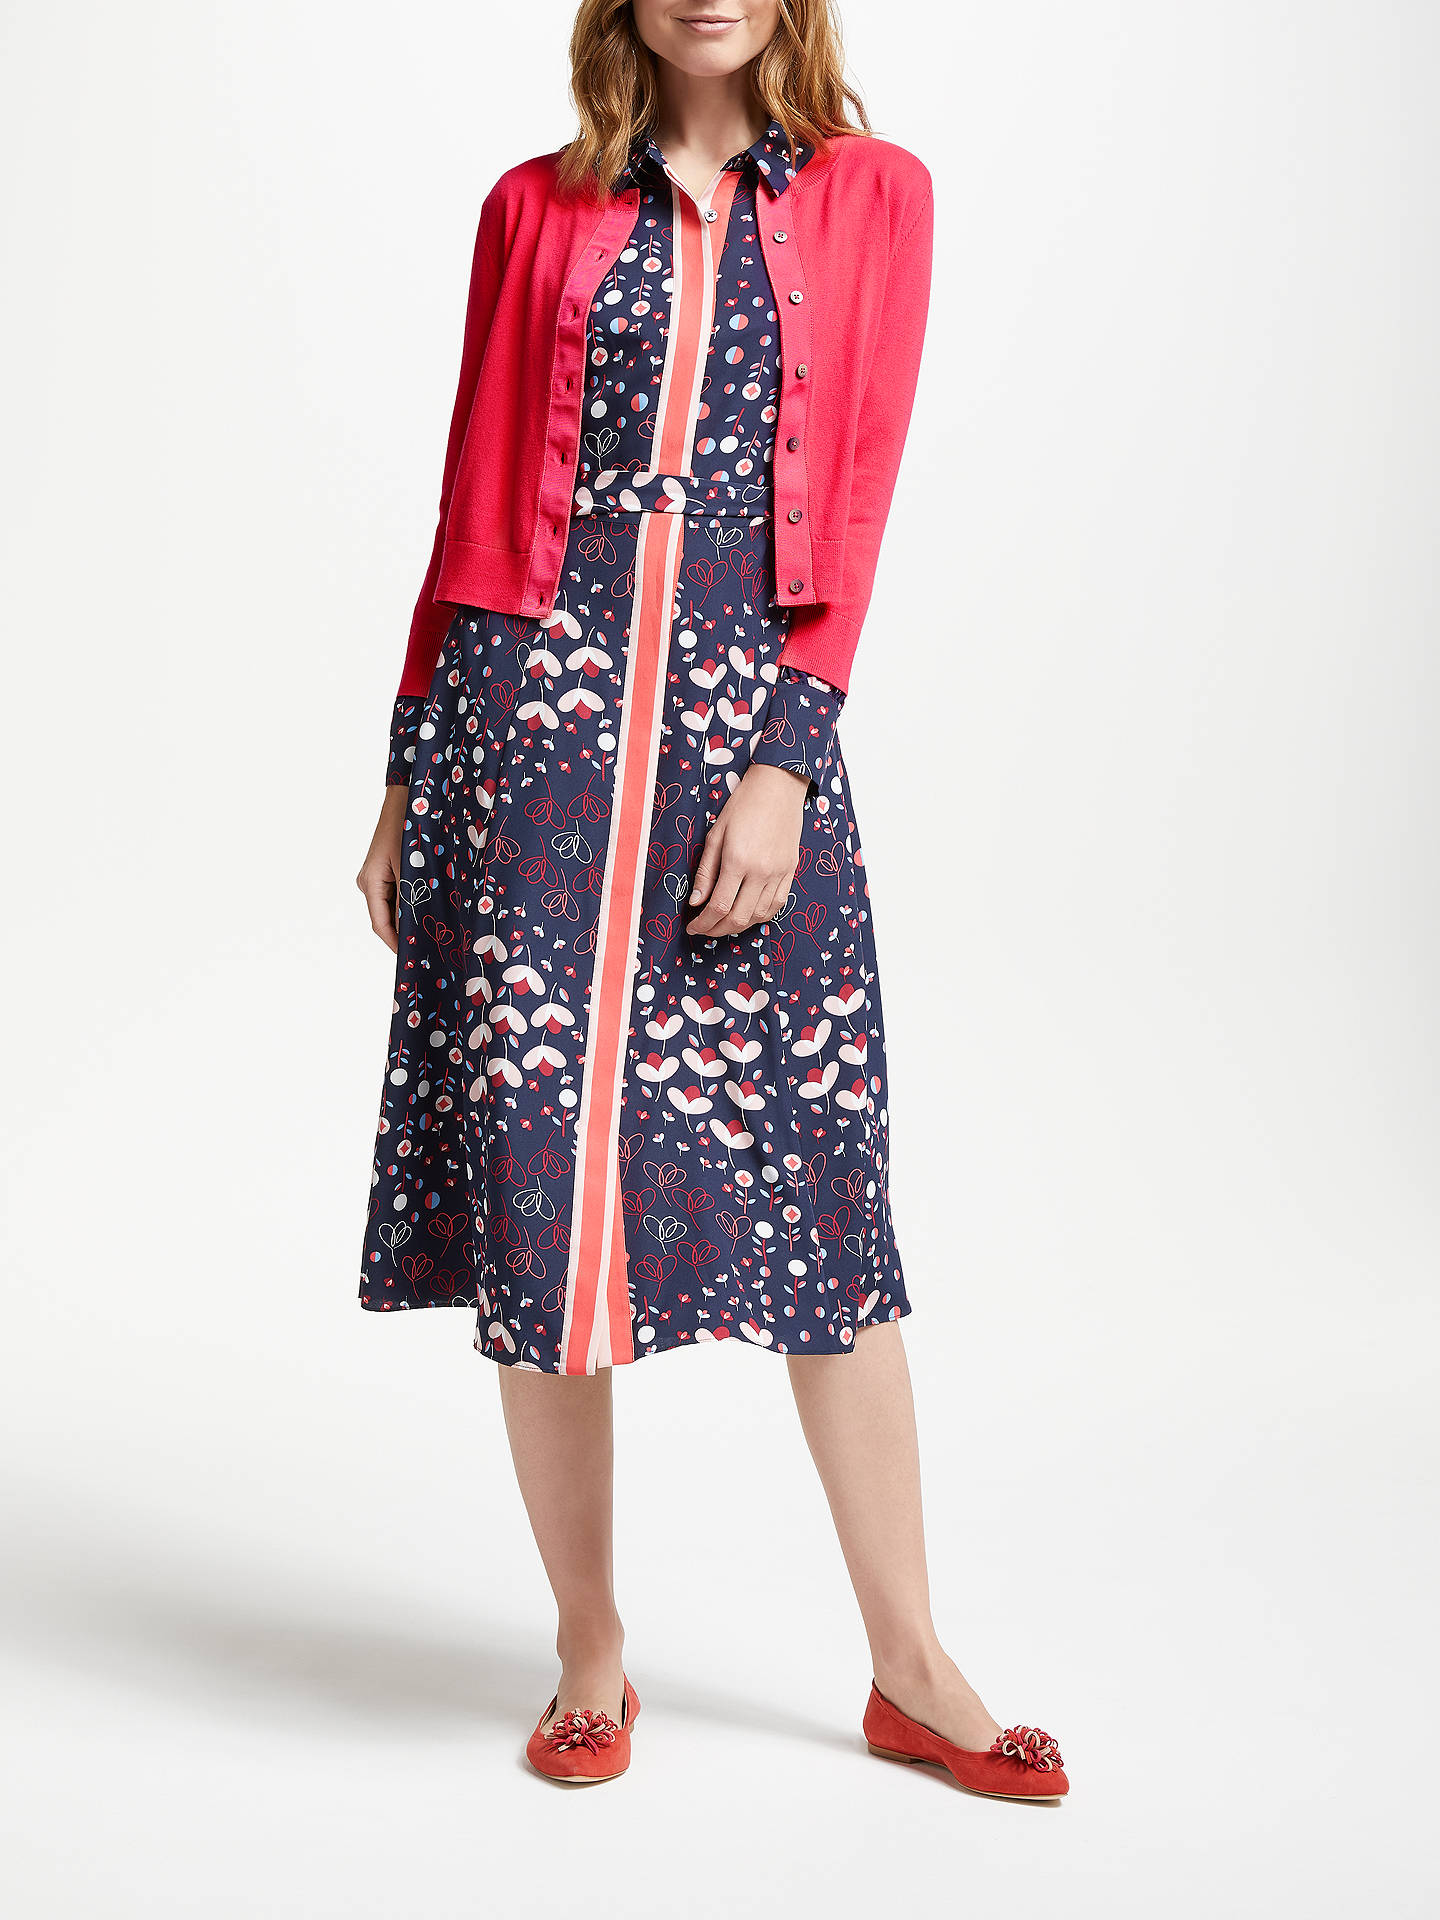 BuyBoden Amelia Crop Cardigan, Pop Peony, XS Online at johnlewis.com